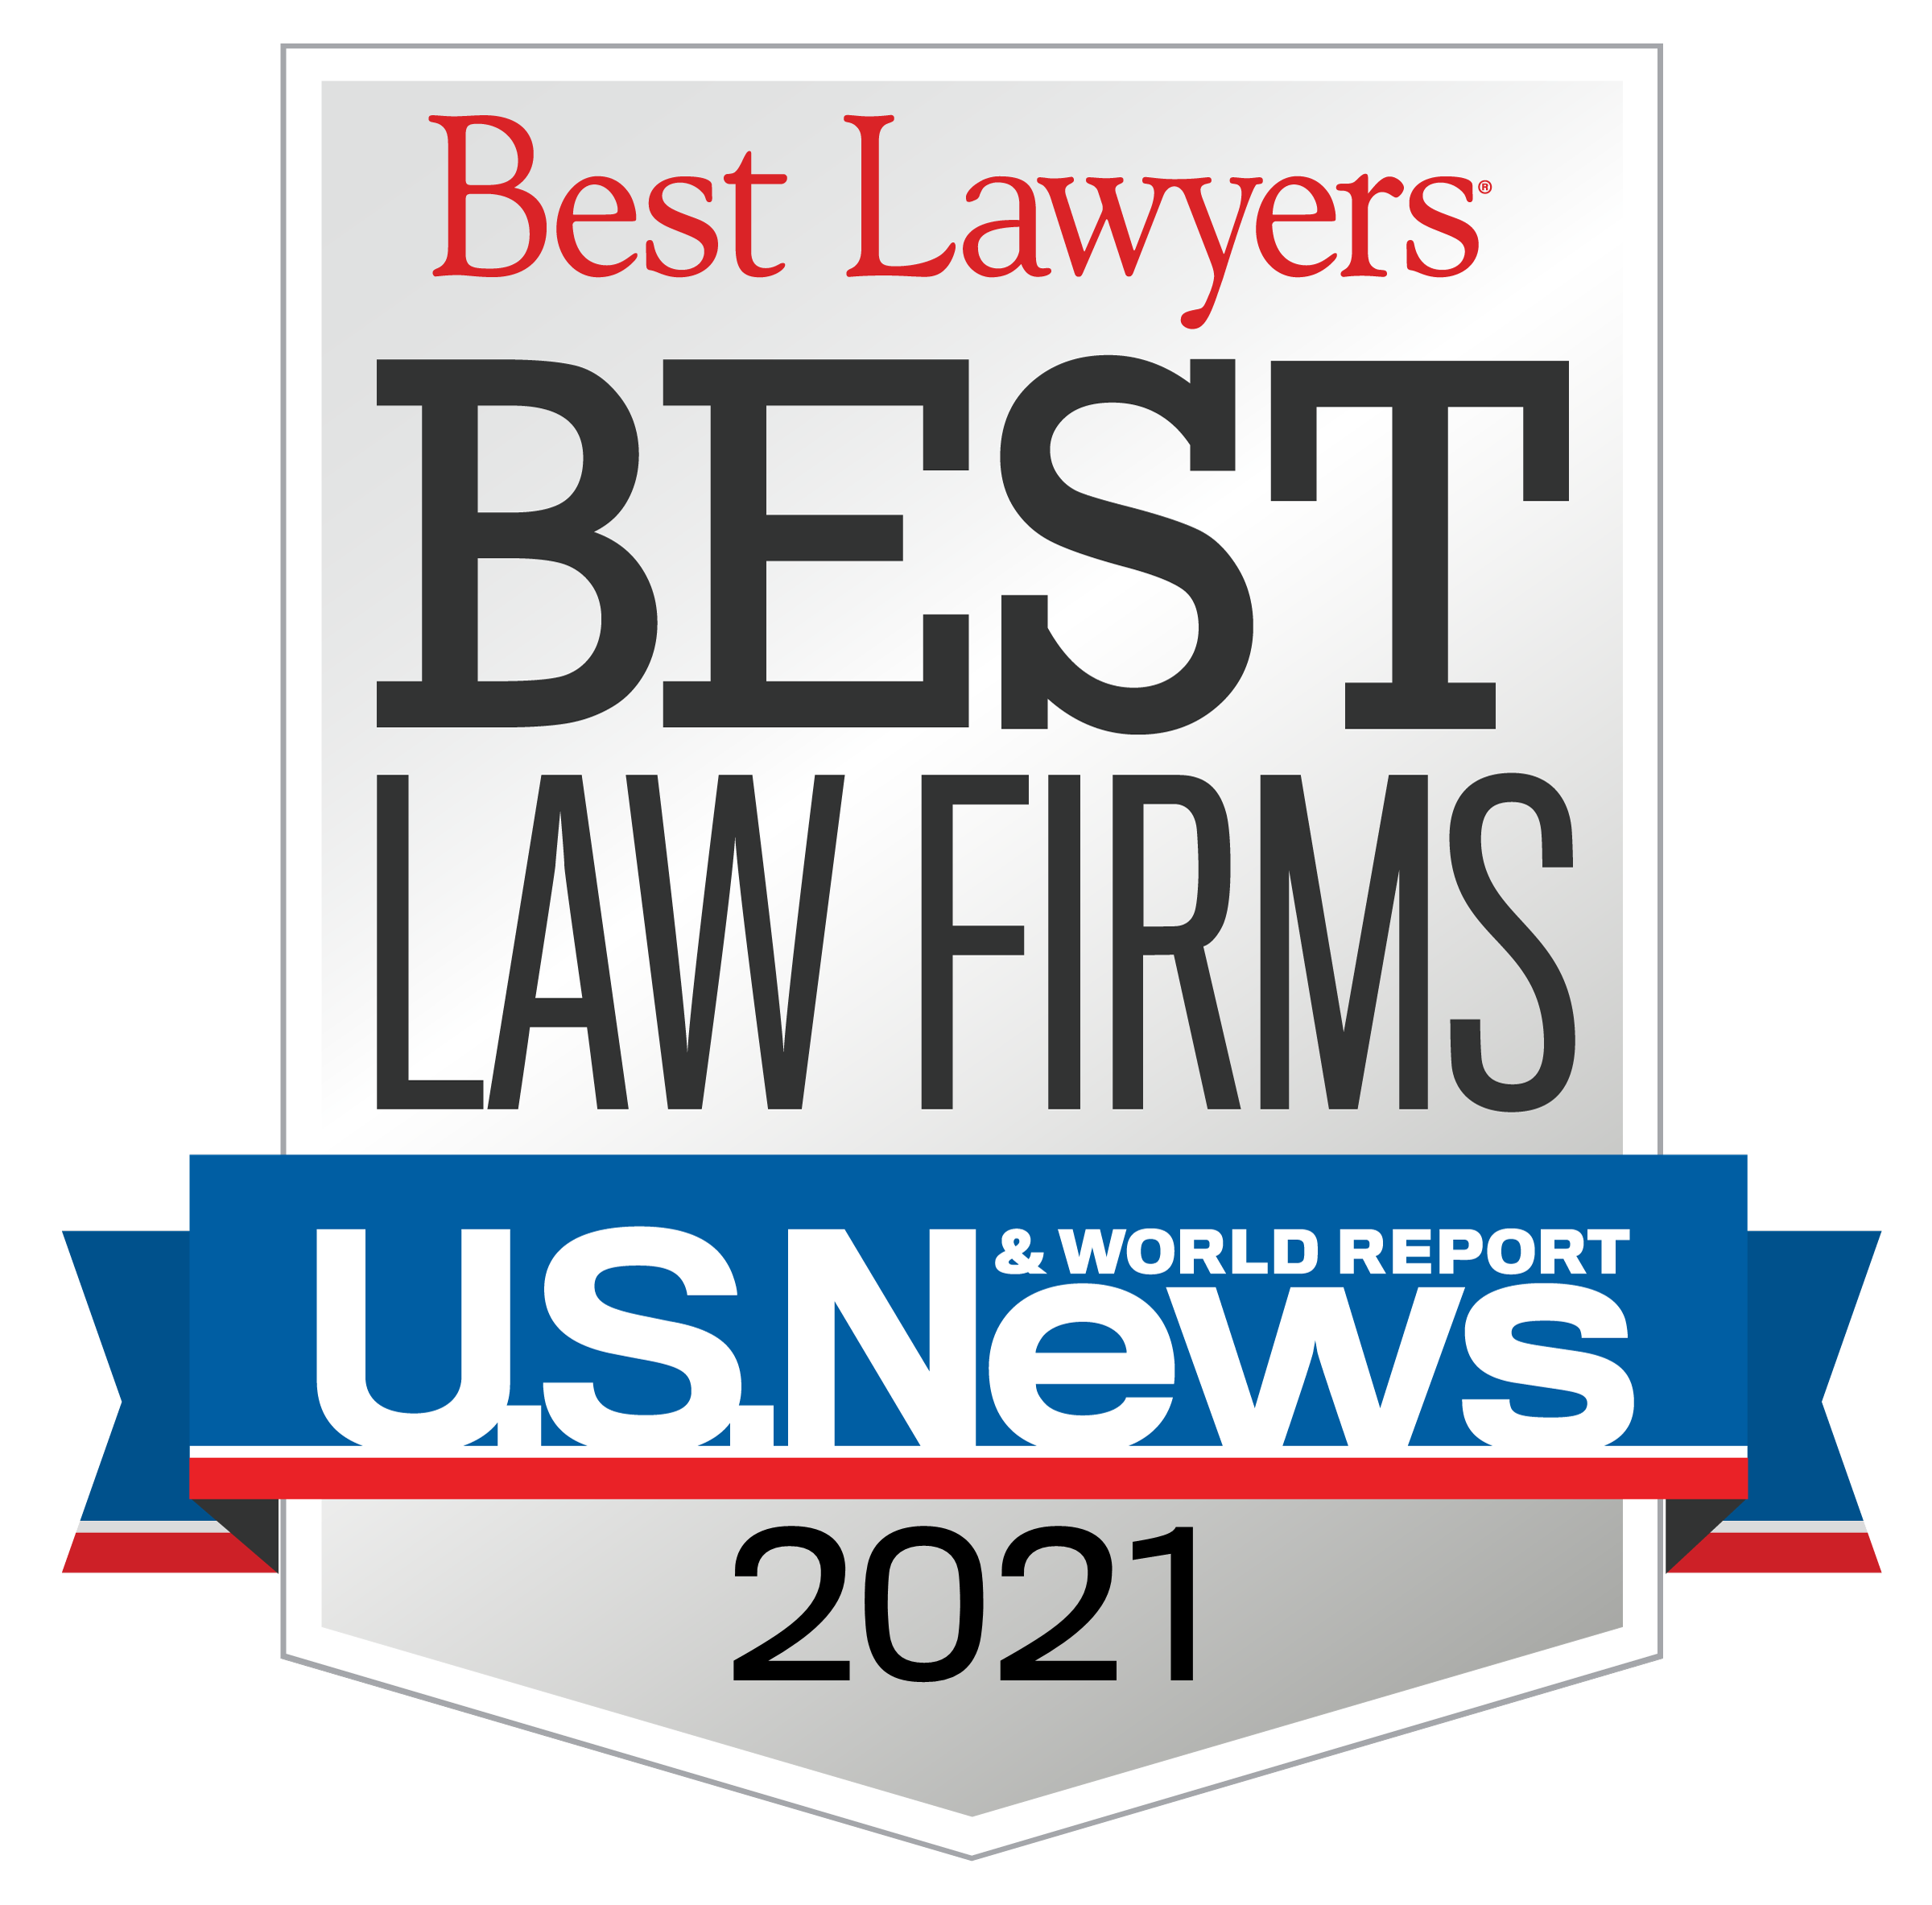 Best Law Firms - Standard Badge